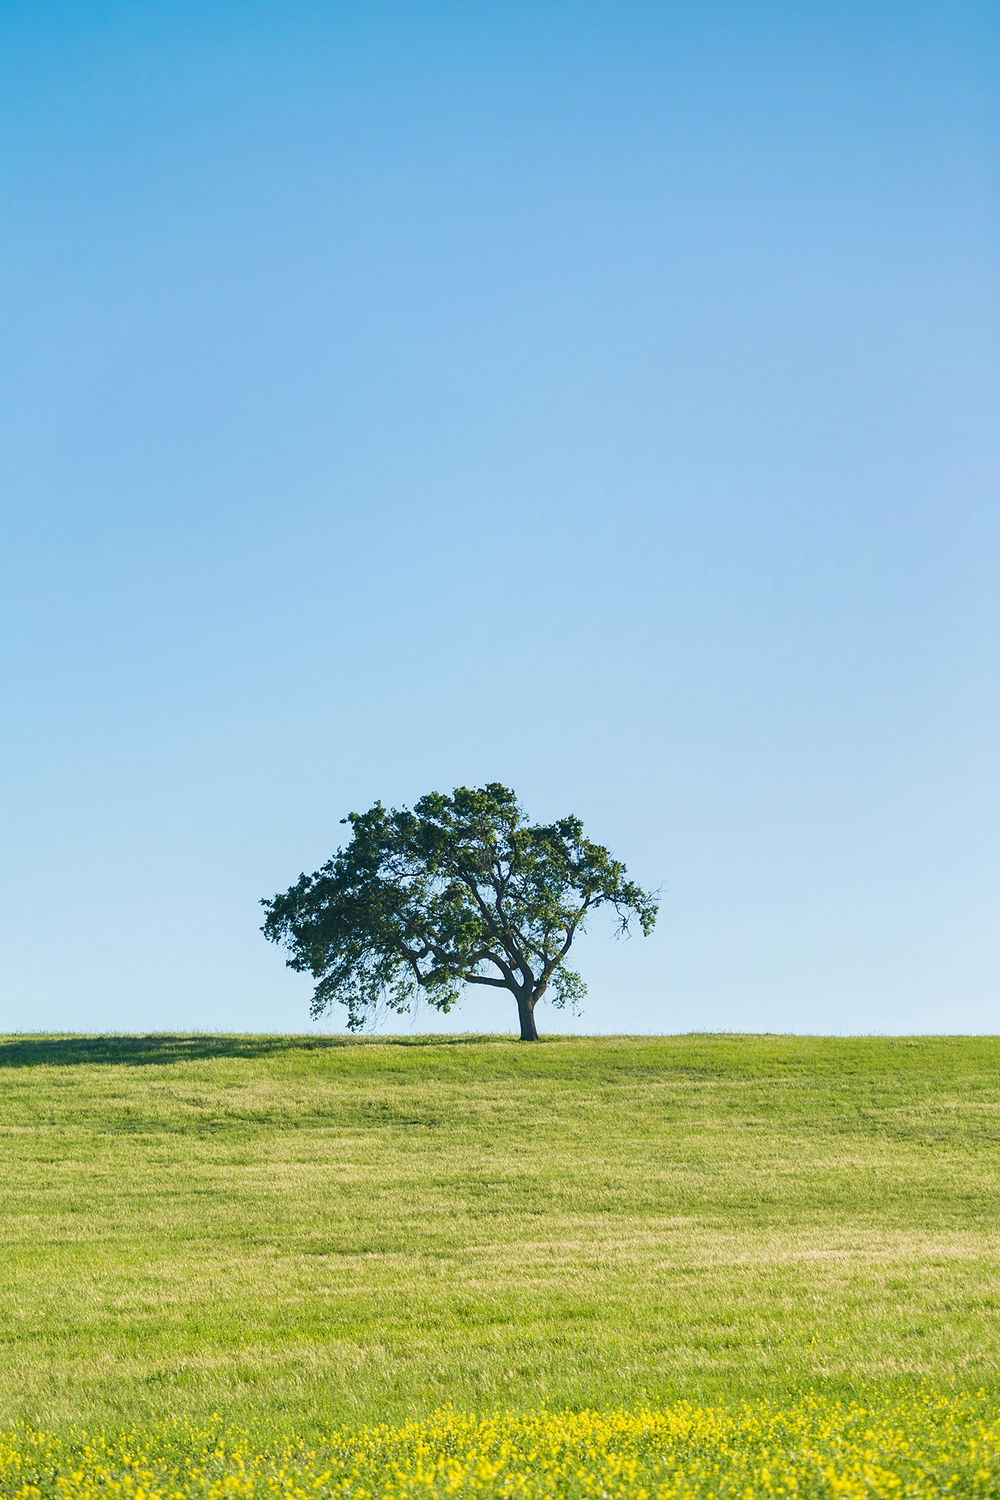 Joshua_Shelly_Photography_letting_go_tree.jpg